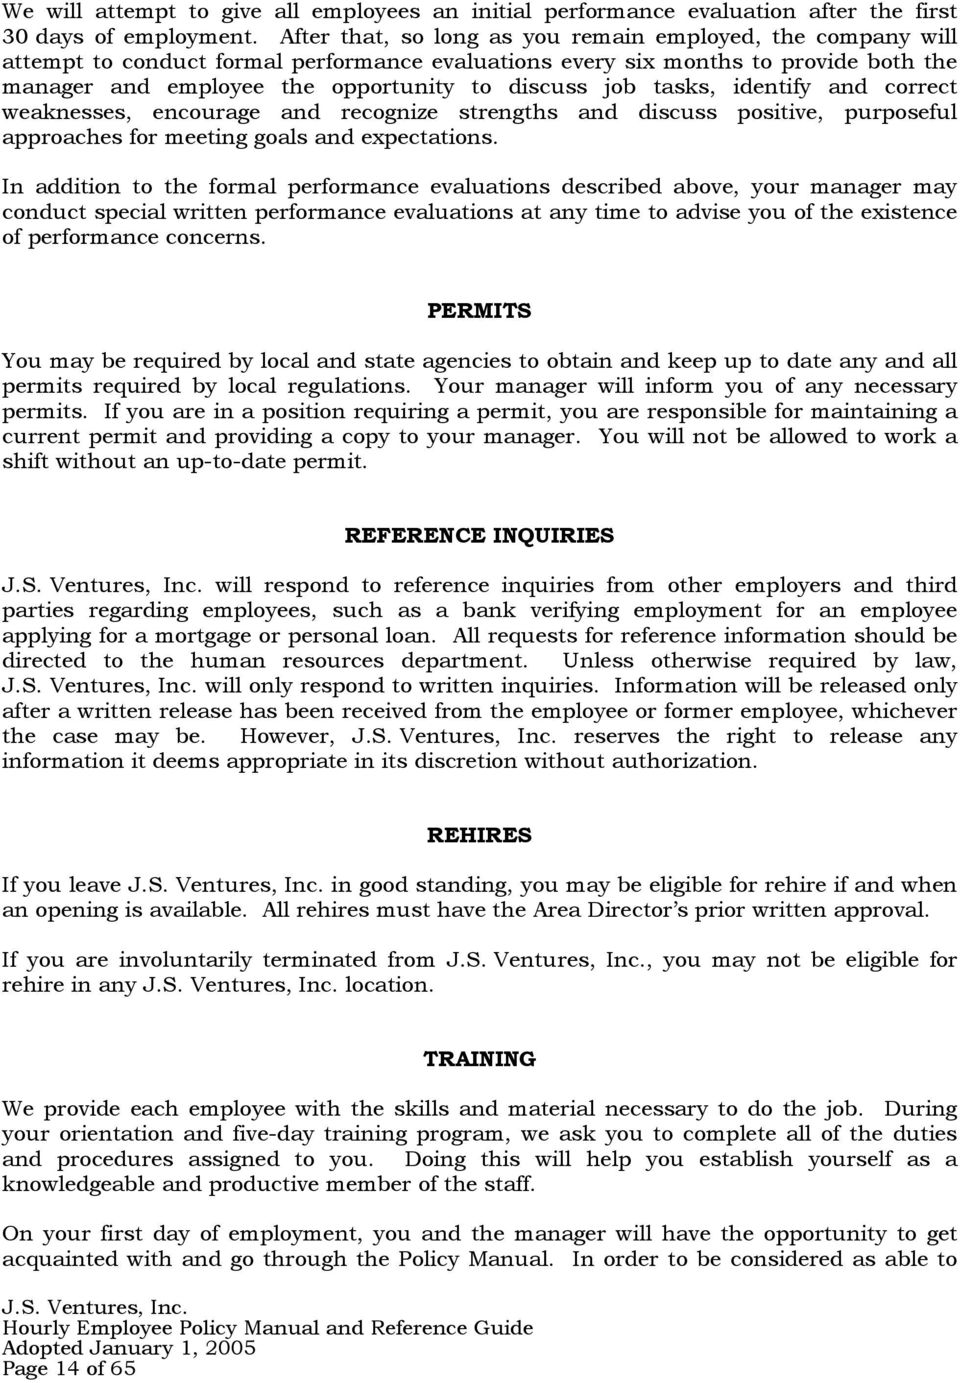 J S  VENTURES, INC  POLICY MANUAL AND REFERENCE GUIDE FOR